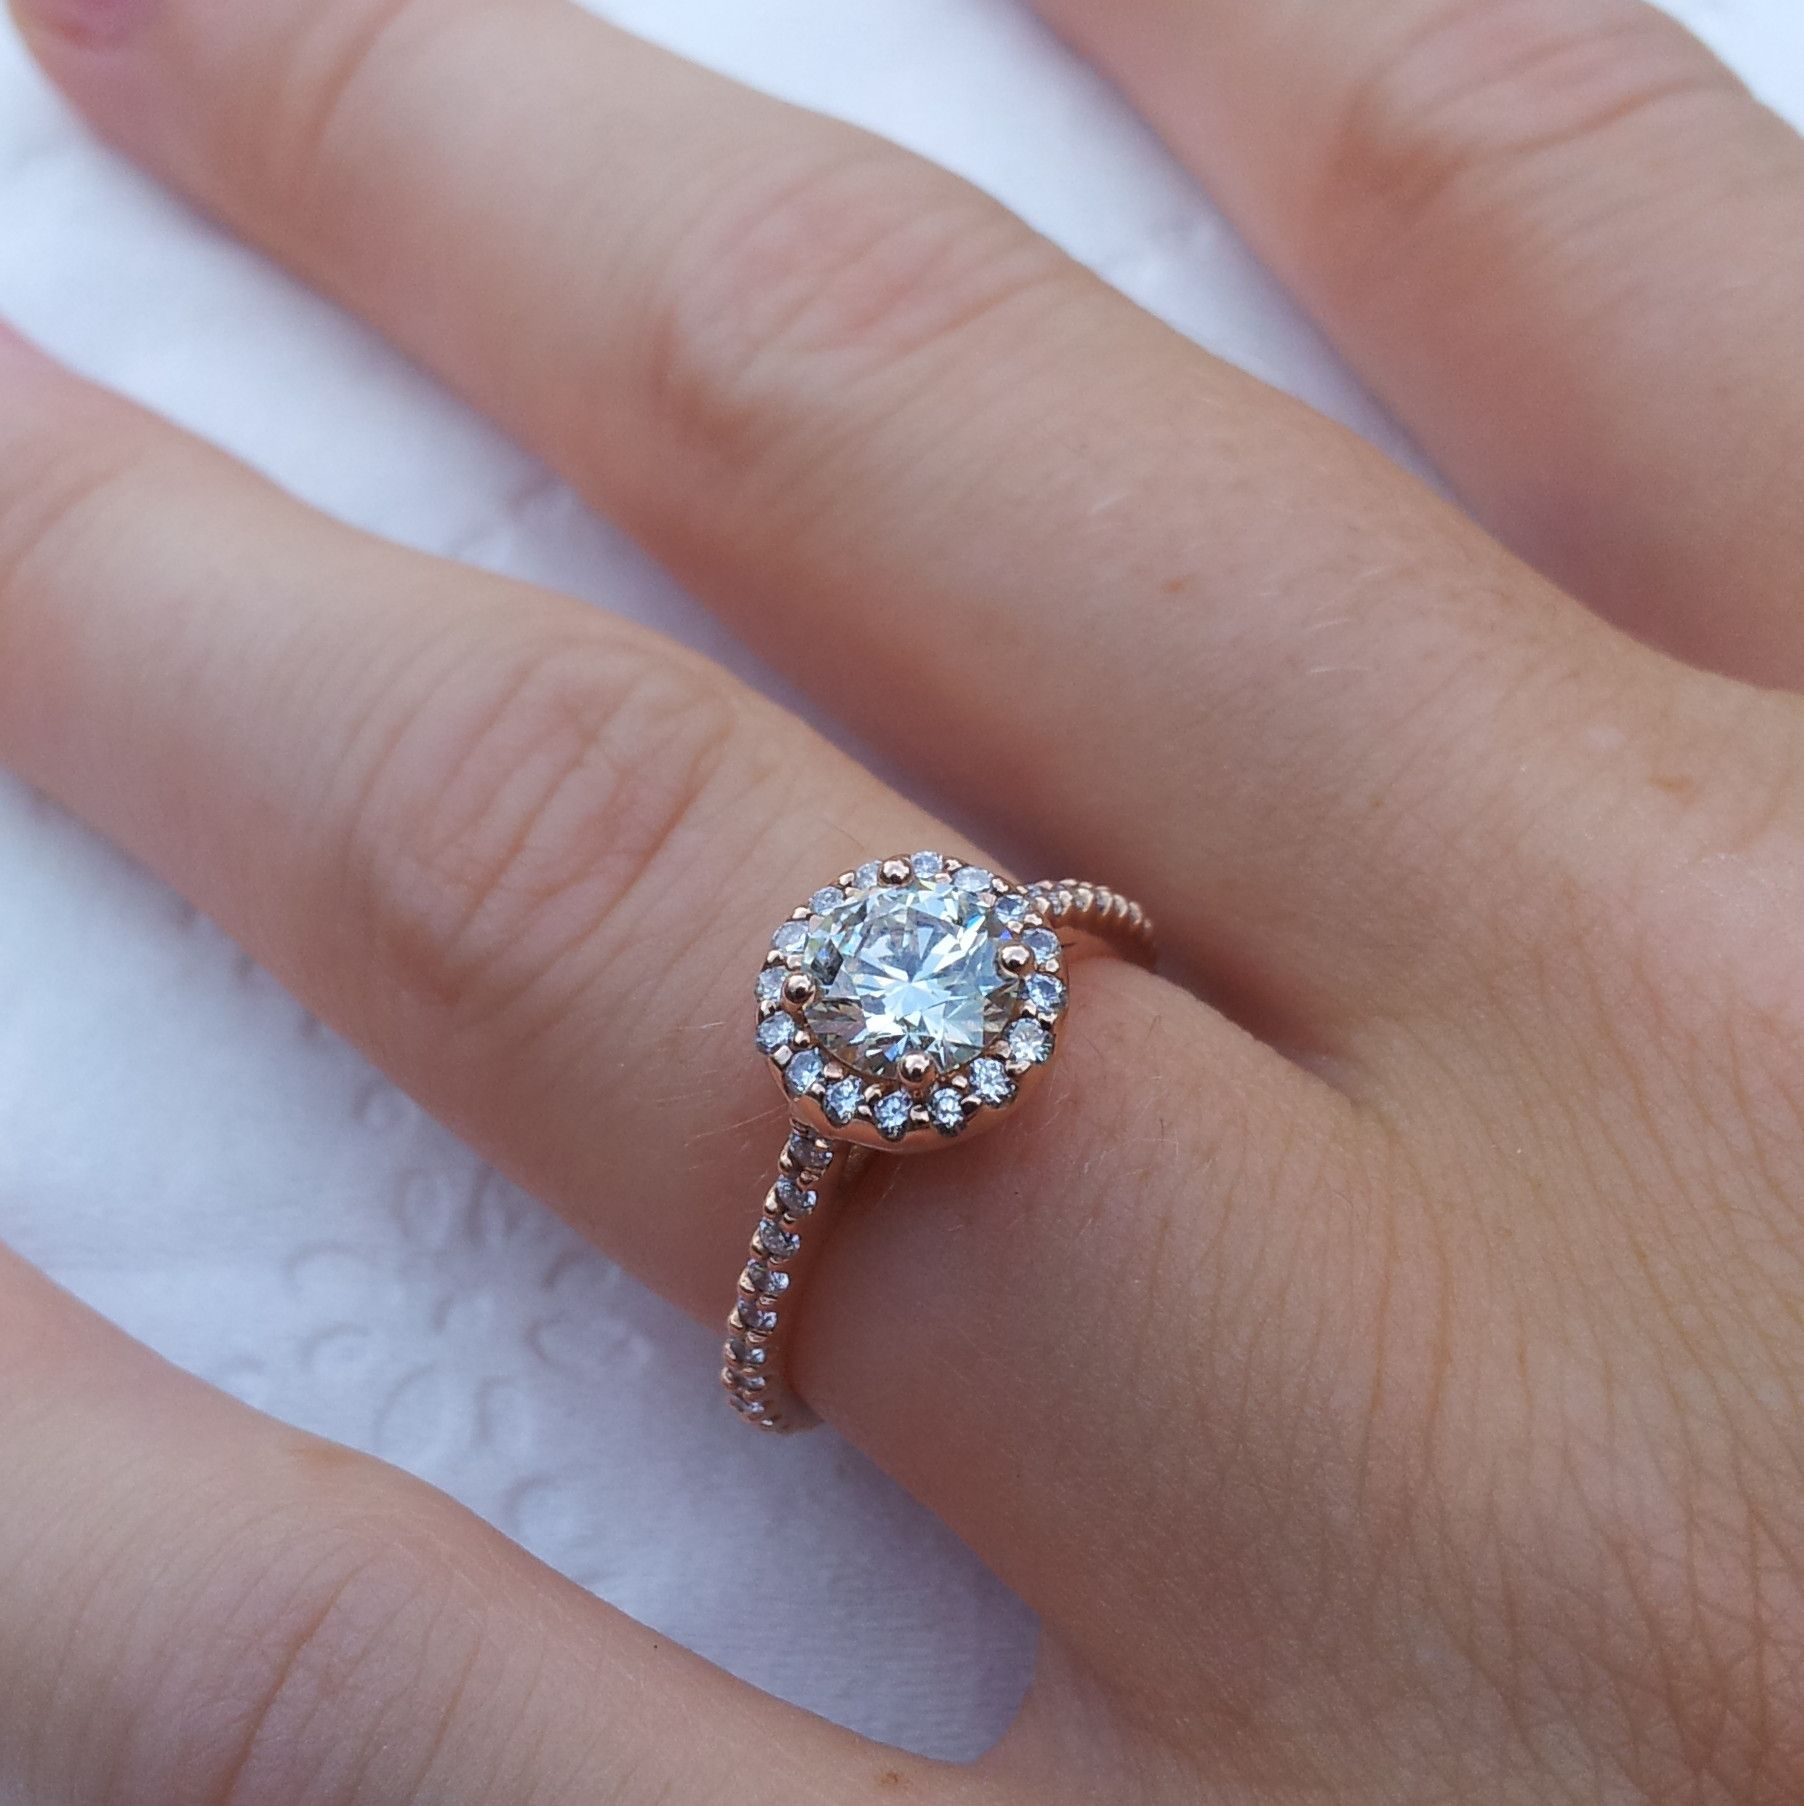 18k rose gold with a 34k center stone engagement ring